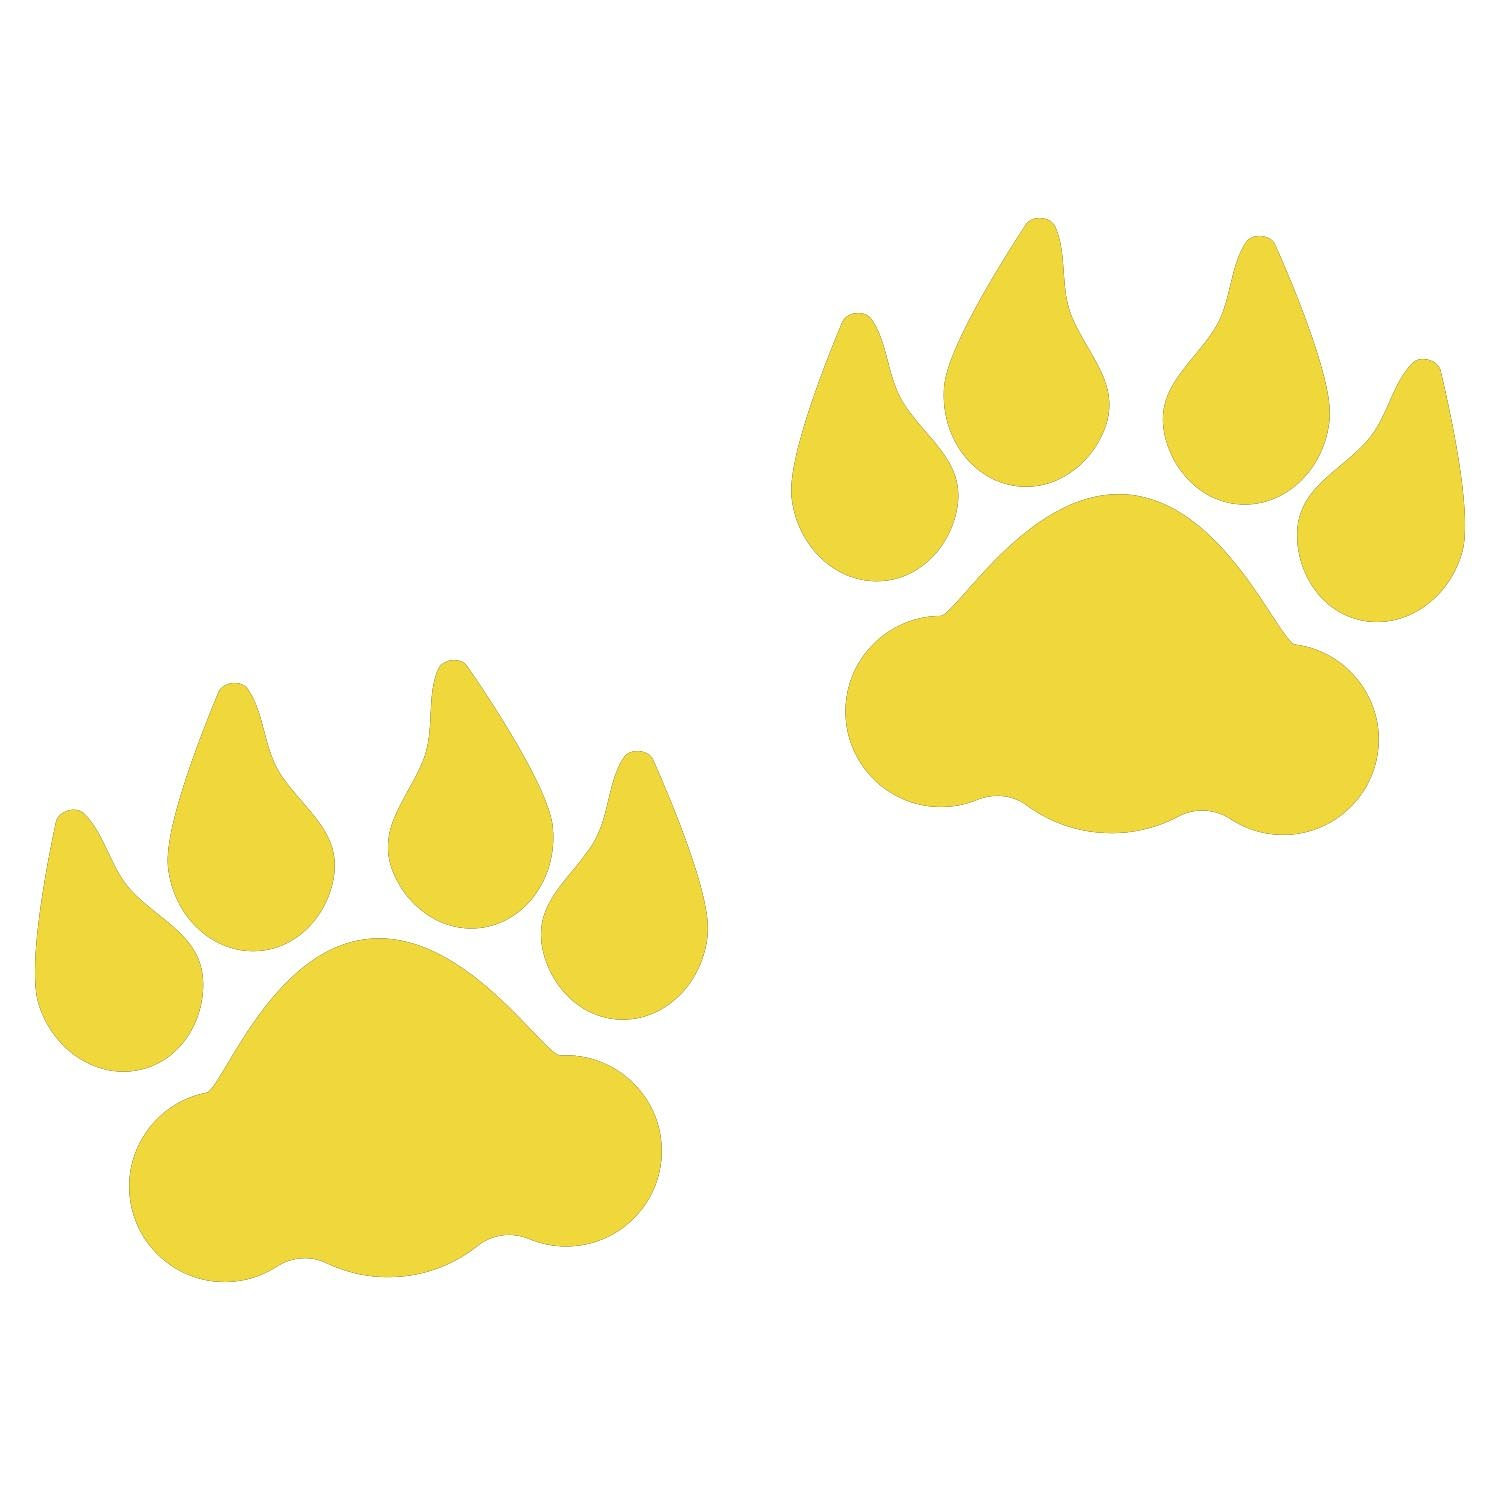 LiteMark 4 Inch Yellow Removable Lion Tracks Decal Stickers for Floors and Walls - Pack of 30